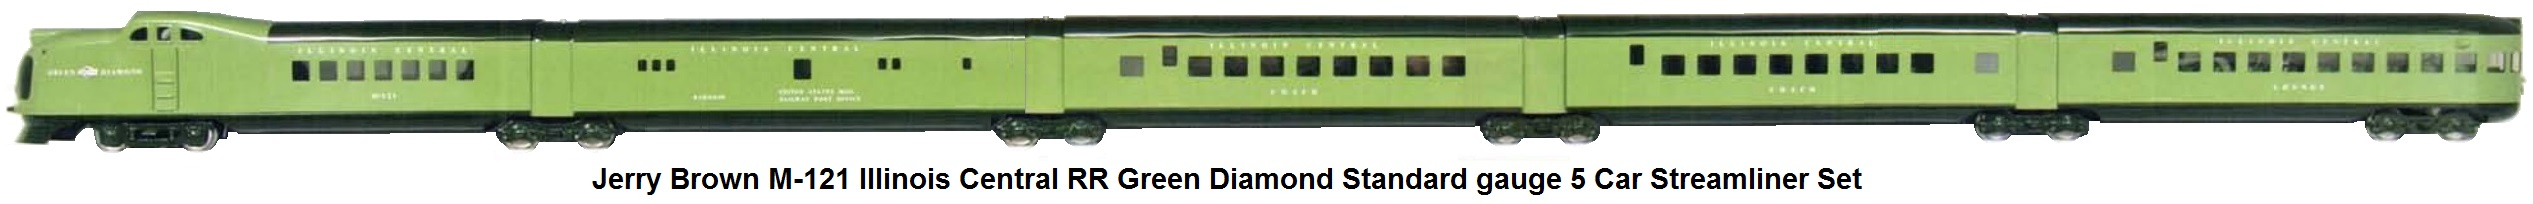 Jerry Brown Illinois Central M-121 Green Diamond in Standard gauge